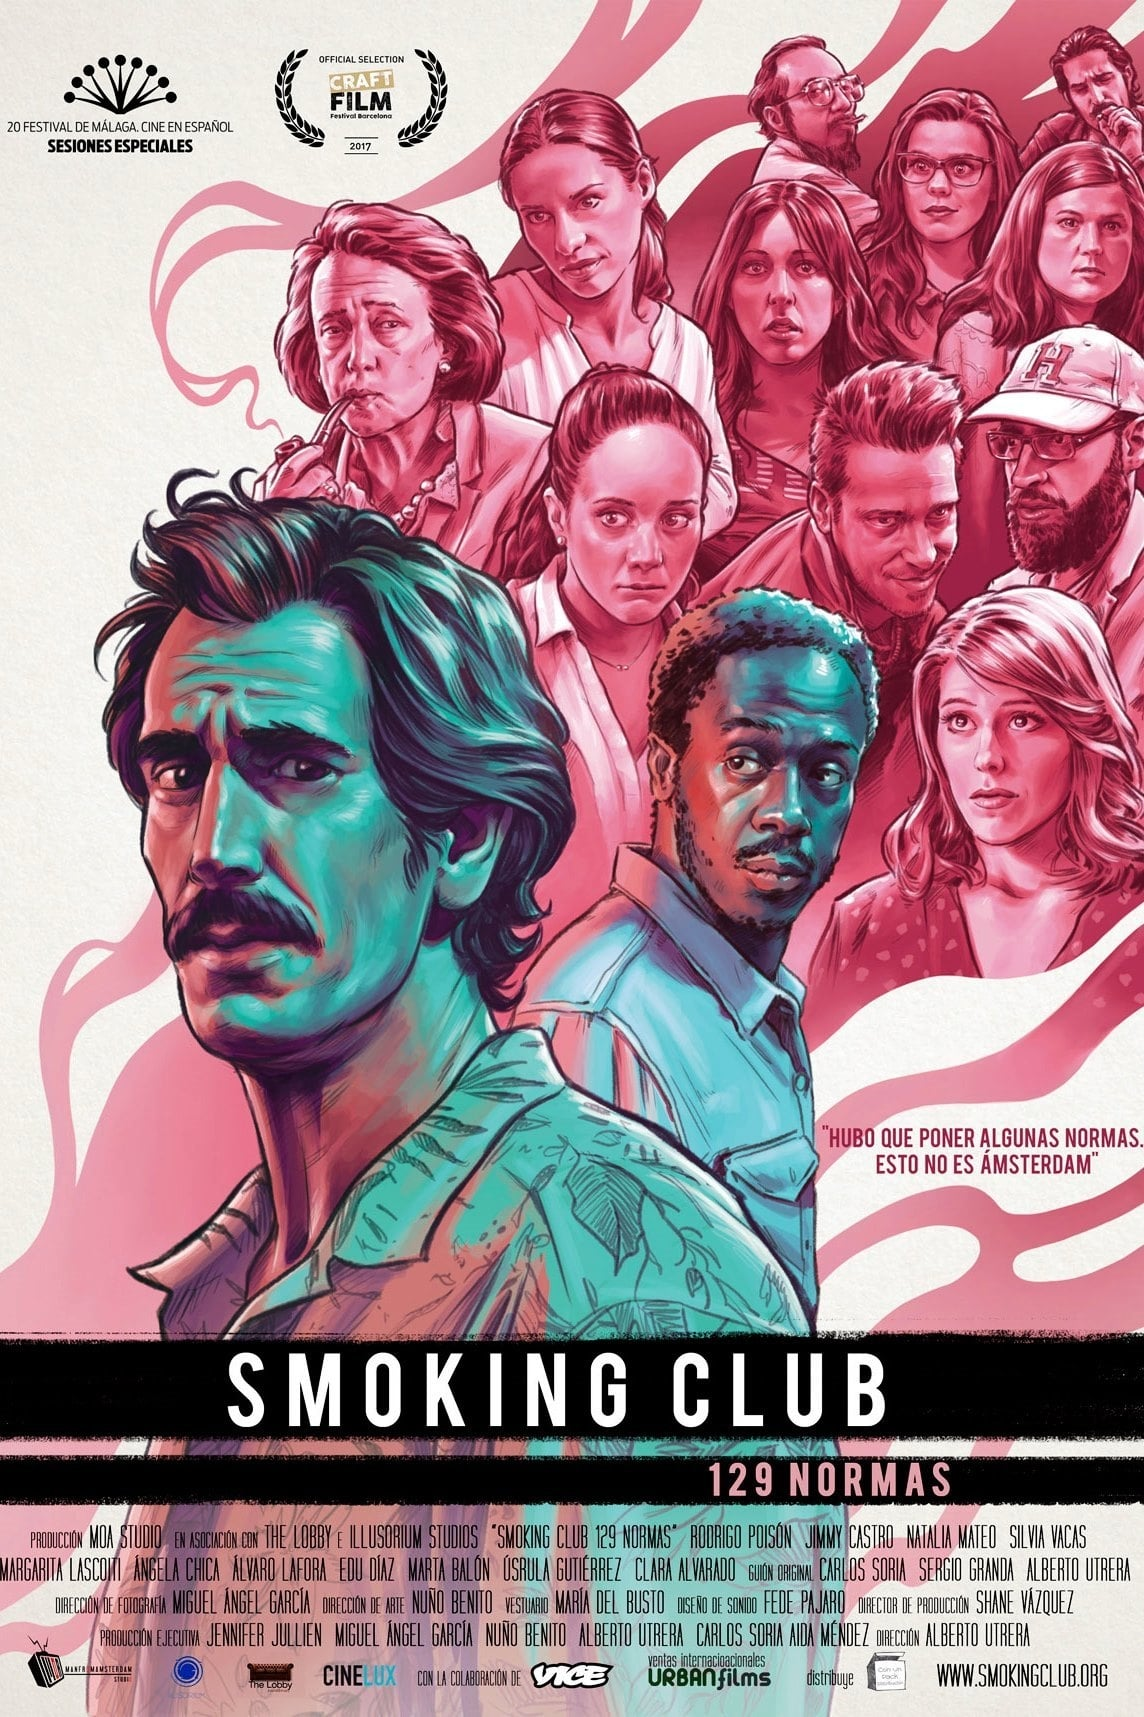 Póster Smoking Club (129 normas)